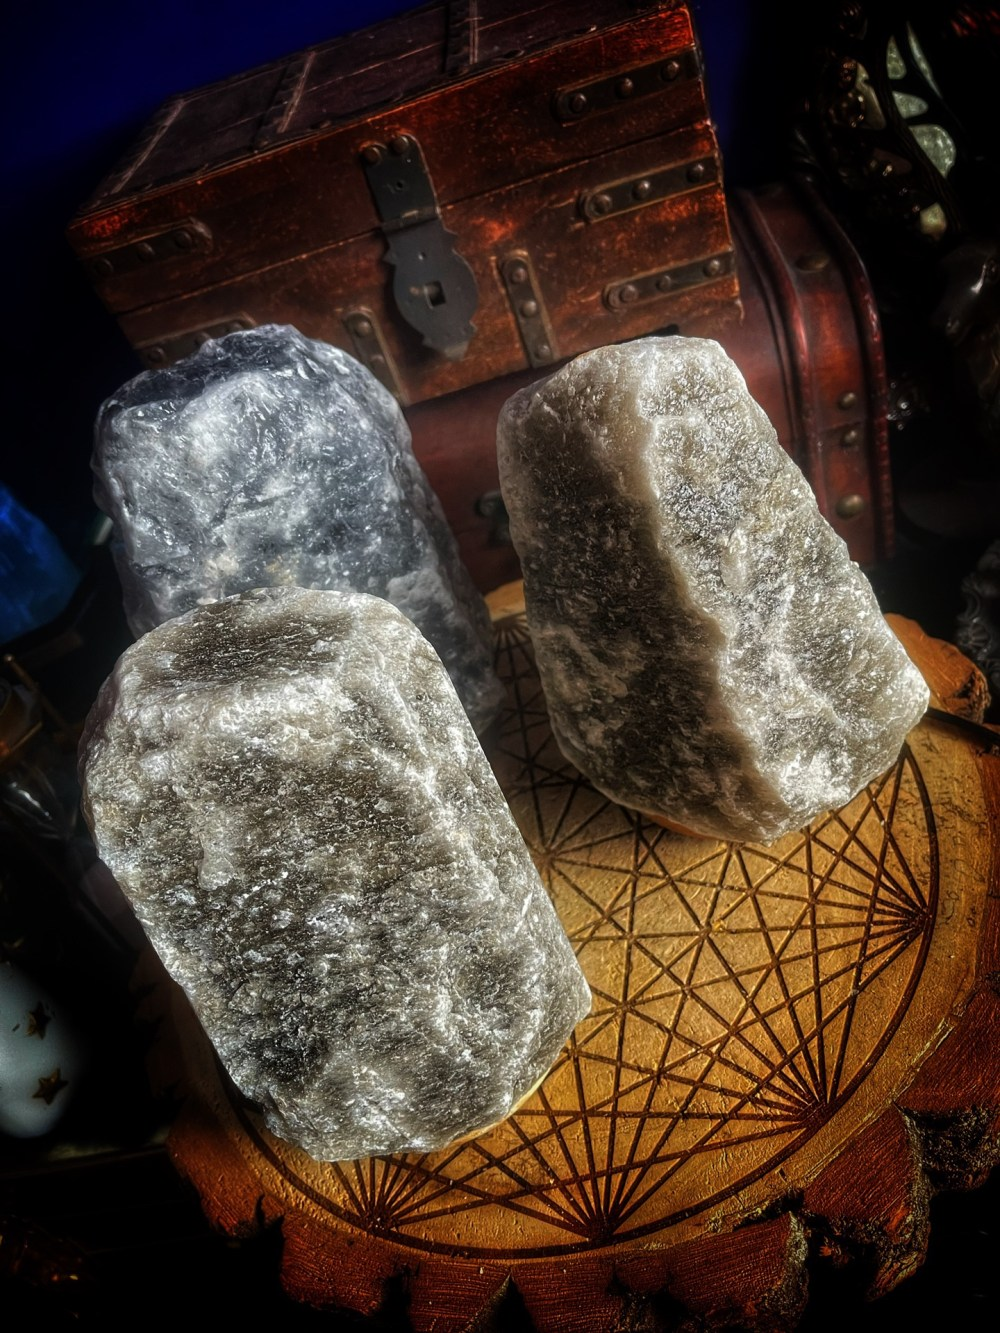 The Witches Black Salt Lamp